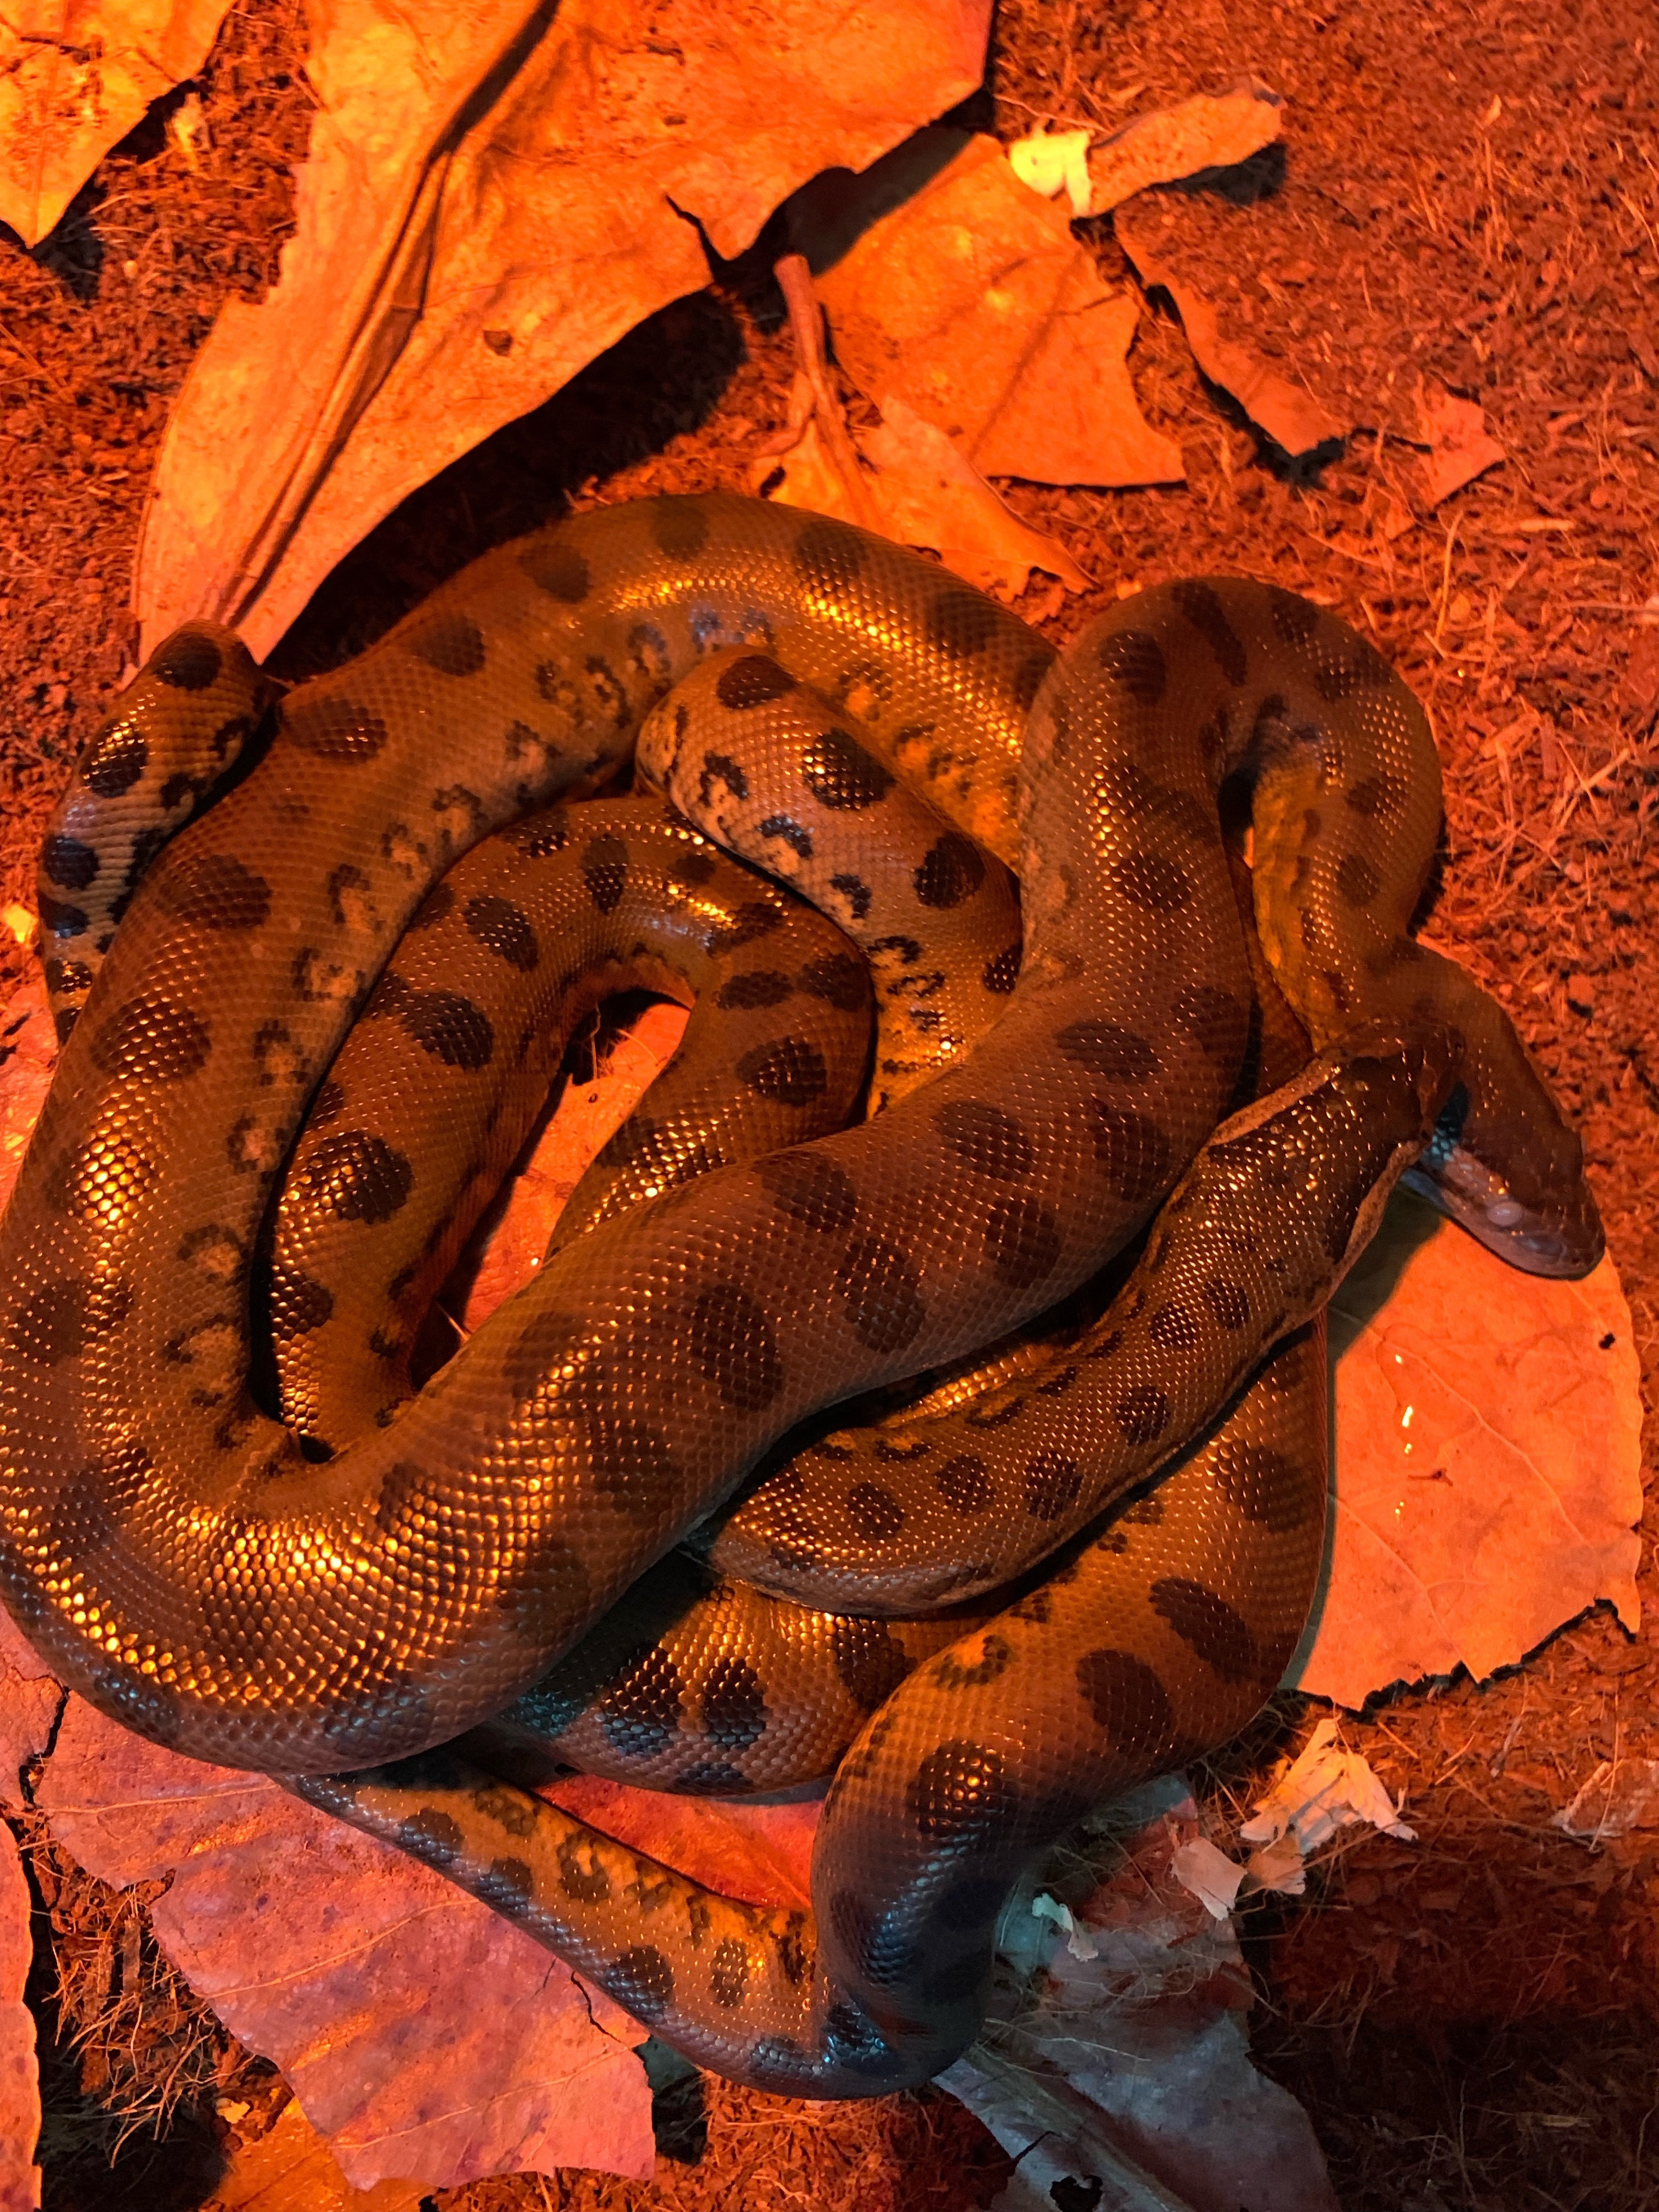 Young anaconda snakes born by parthenogenesis hang out together in a behind-the-scenes holding area at the New England Aquarium in Boston.